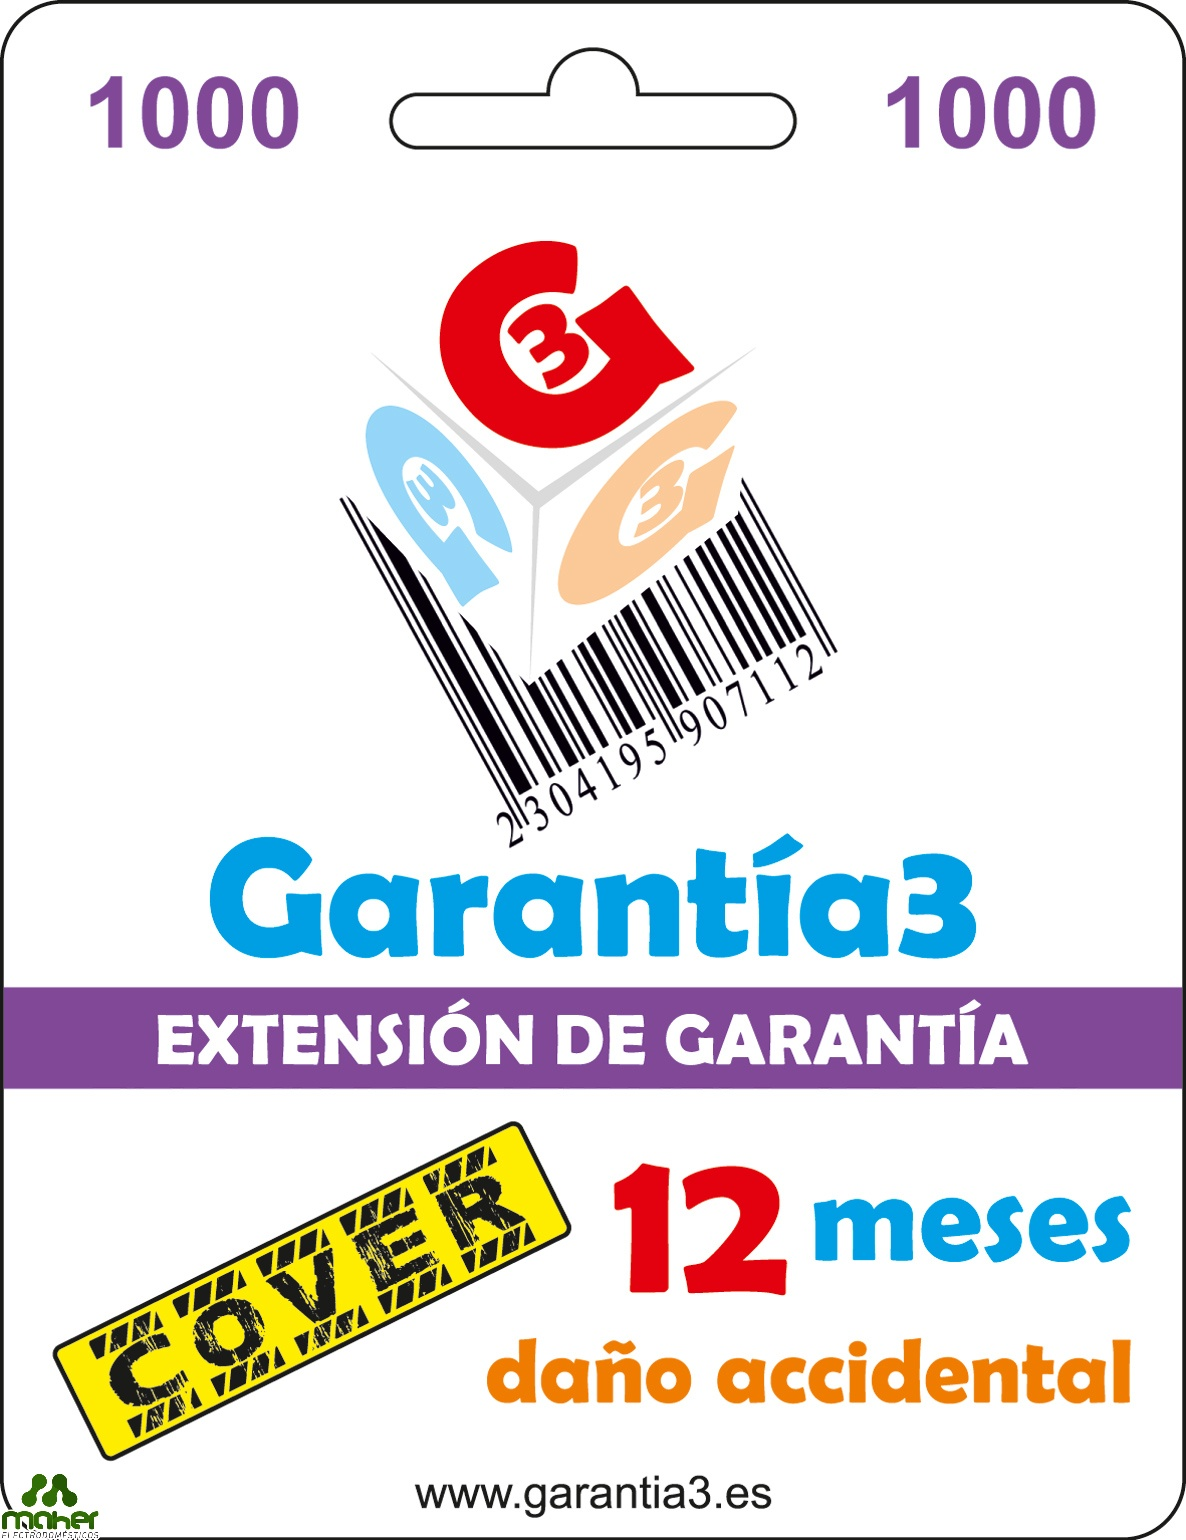 EXTENSION GARANTIA 12 MESES PARA DAÑO ACCIDENTAL 1000€